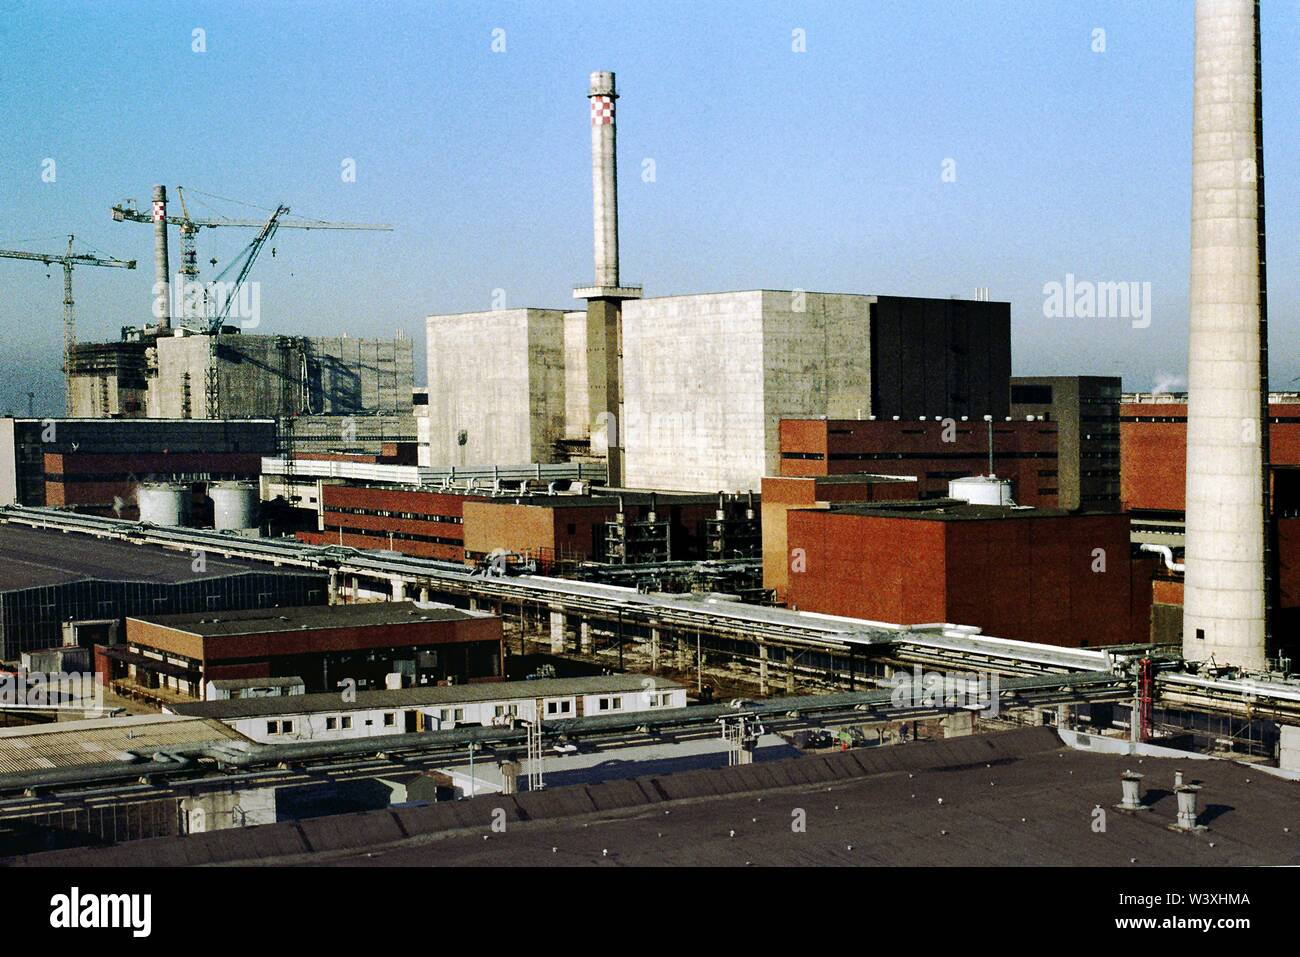 FILED - 18 July 2019, Berlin, Lubmin: Mecklenburg-Western Pomerania/GDR/1990 Lubmin nuclear power plant near Greifswald. Block 5 is still under construction. A little later, the power plant is shut down for safety reasons. Later, an interim storage facility for radioactive waste will be set up there. The technology of the NPP was Soviet. A total of 5 blocks were planned, 4 were in operation, each with a capacity of 400 MW. All decommissioned in 1990 // Atom/Energy/Reactor/Atom/Nuclear Power/Federal States *** Local Caption *** East Germany/Energy Atomic power plant near Greifsw - Stock Image